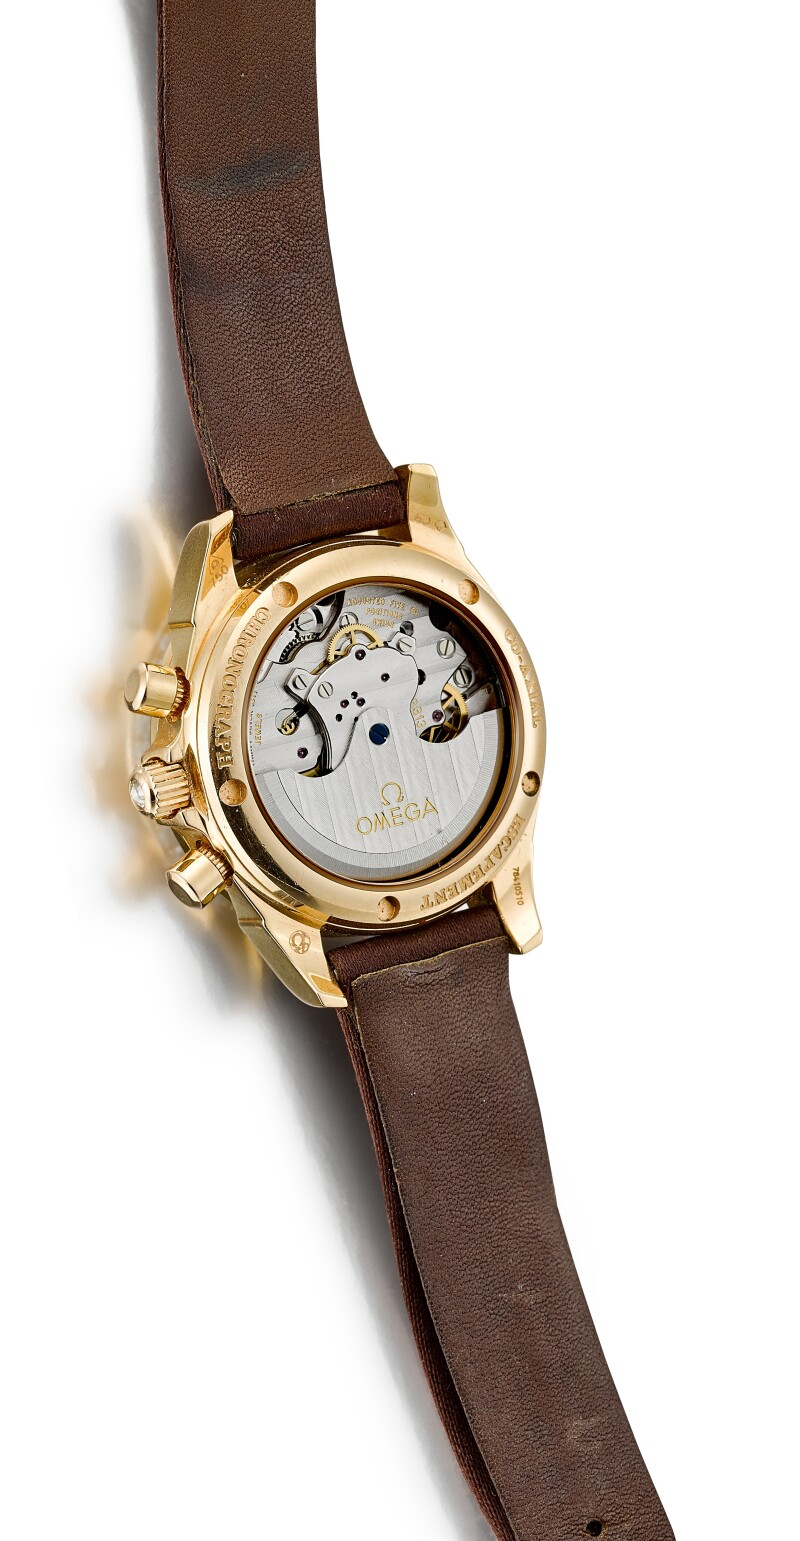 De Ville Co-Axial Chronometer  A Yellow Gold And Diamond-Set Chronograph Wristwatch With Date And Mother-Of-Pearl Dial, Circa 2008